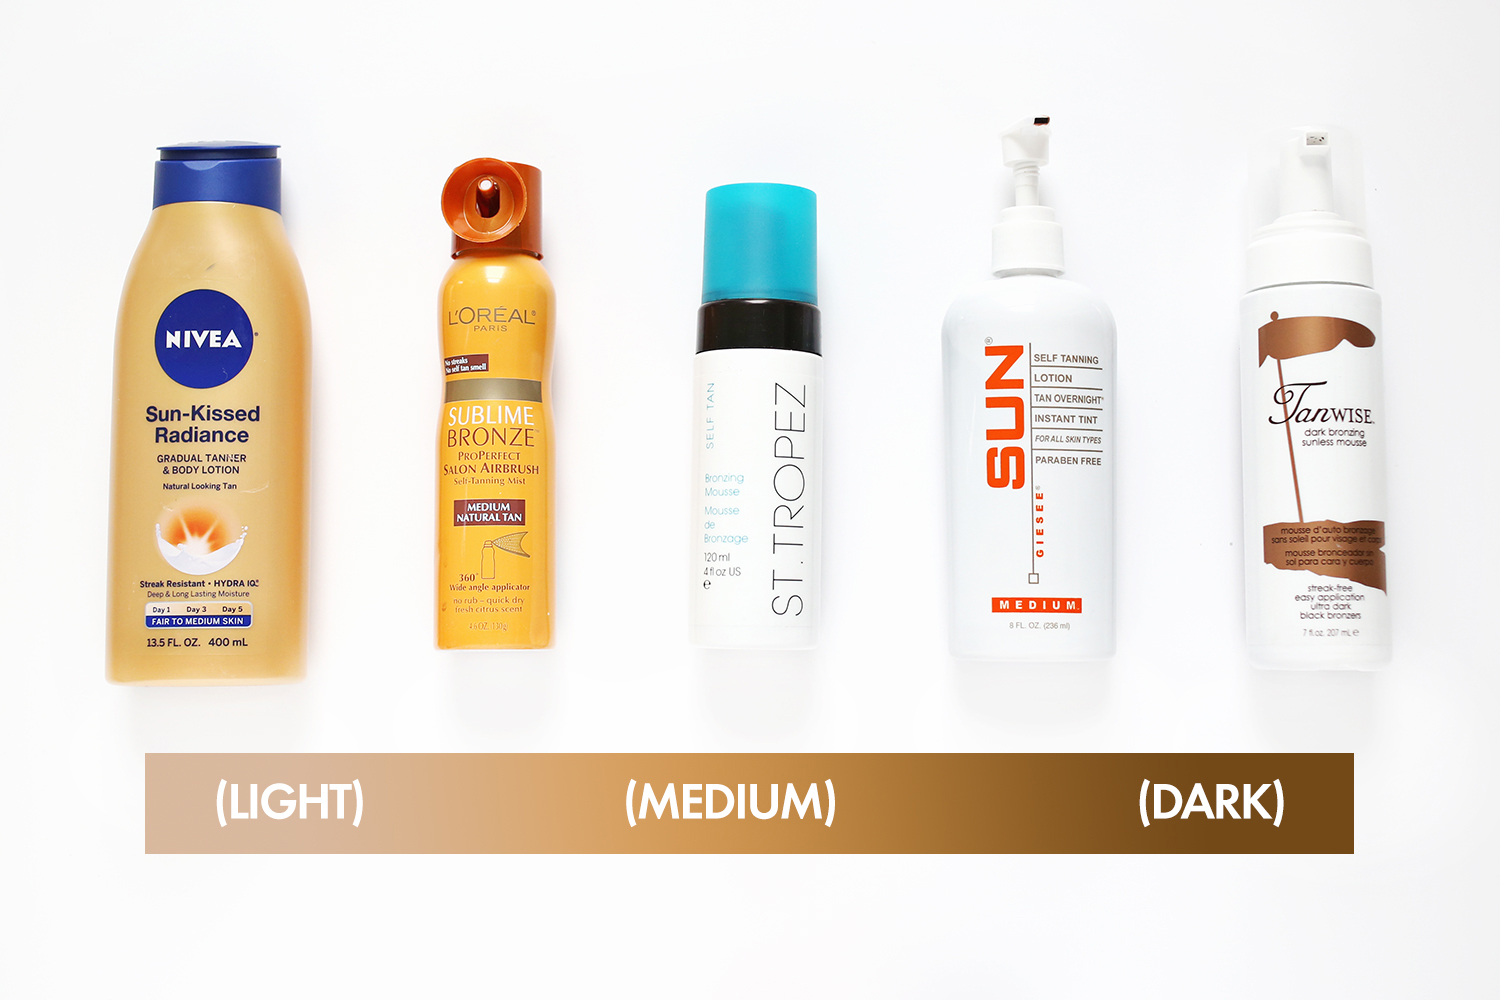 Our search for the perfect self-tanner abeautifulmess.com